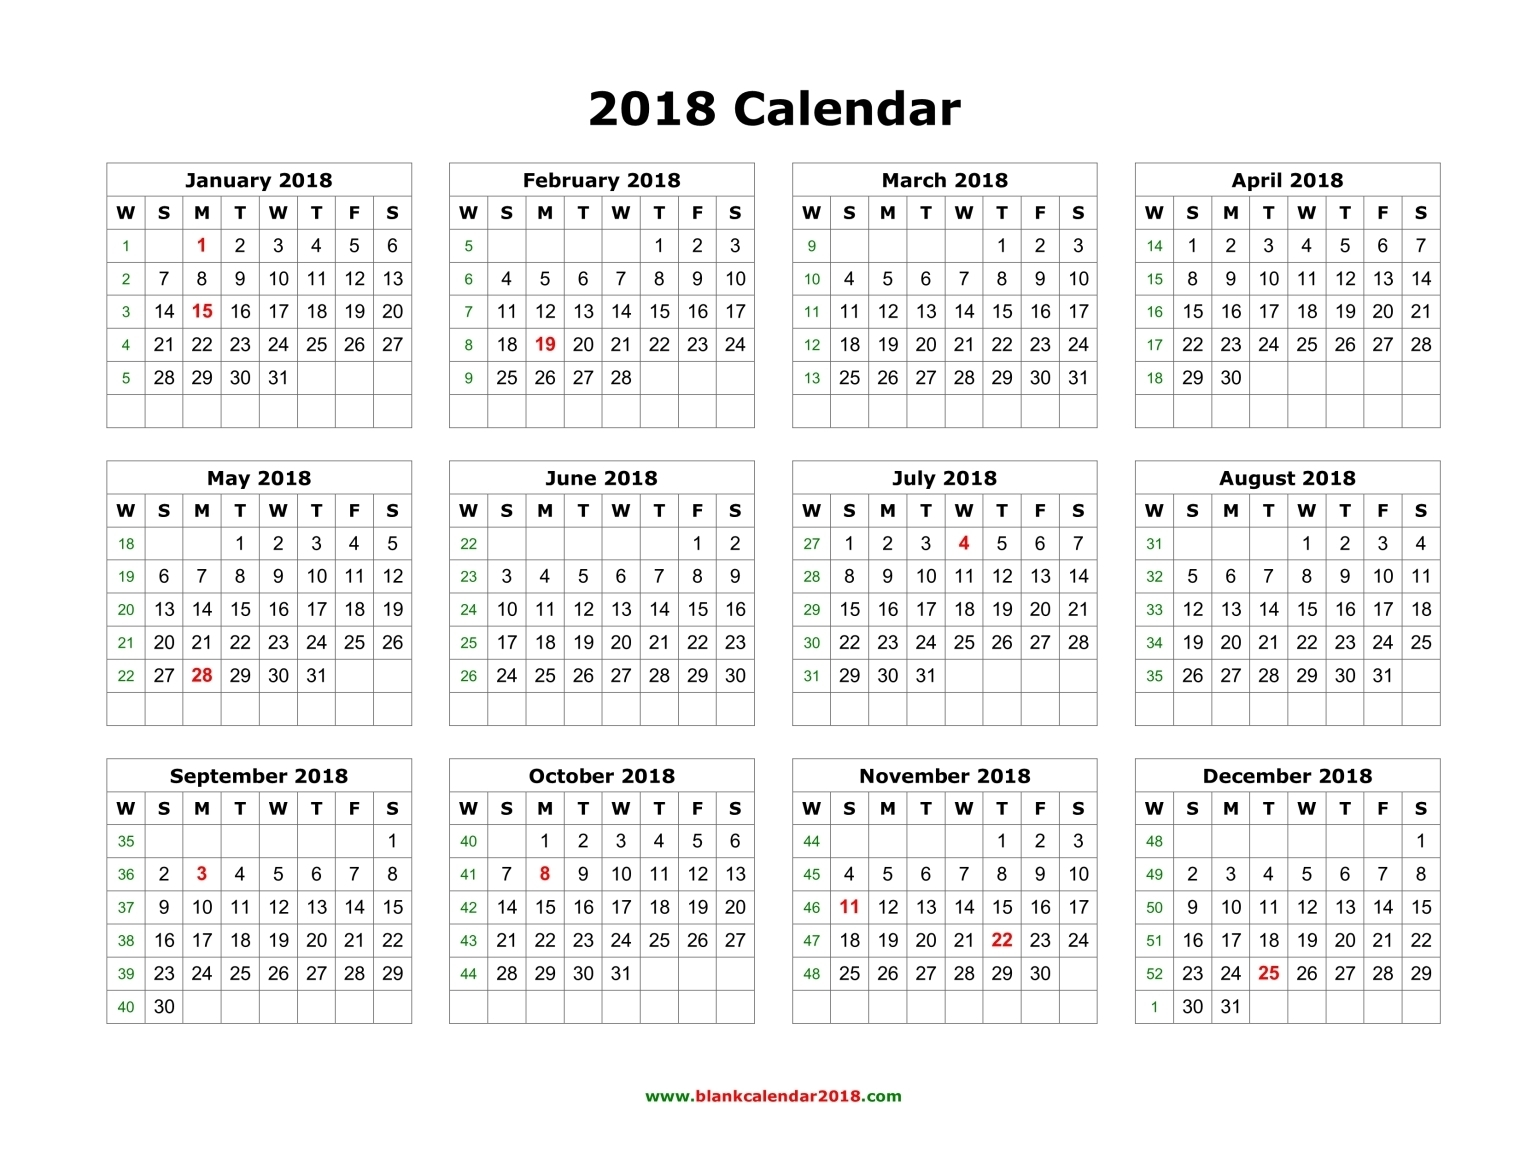 2018 calendar to print free   Physic.minimalistics.co